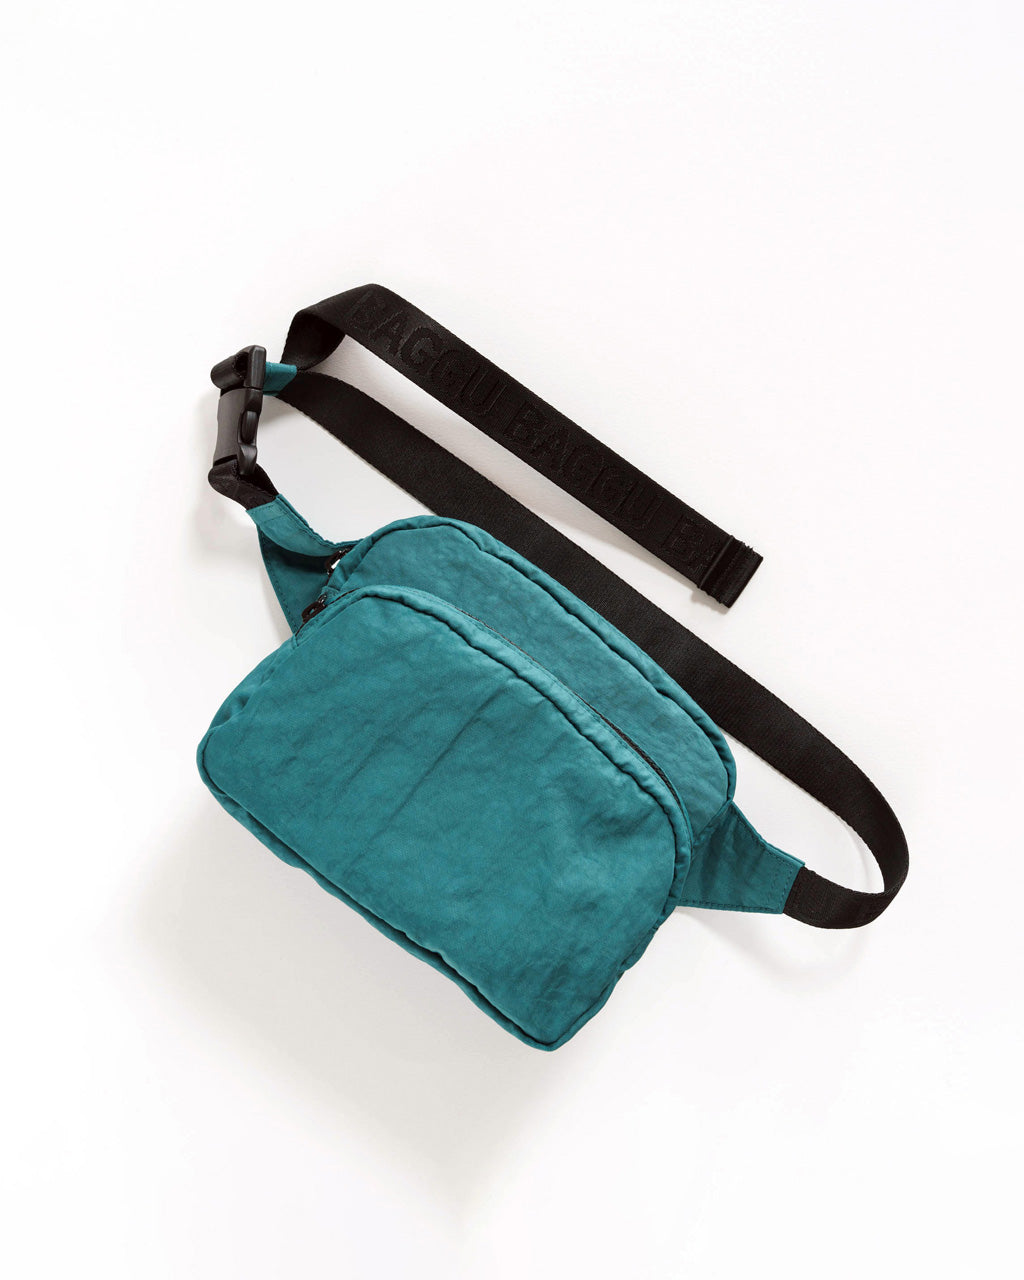 nylon fanny pack in malachite blue with black strap